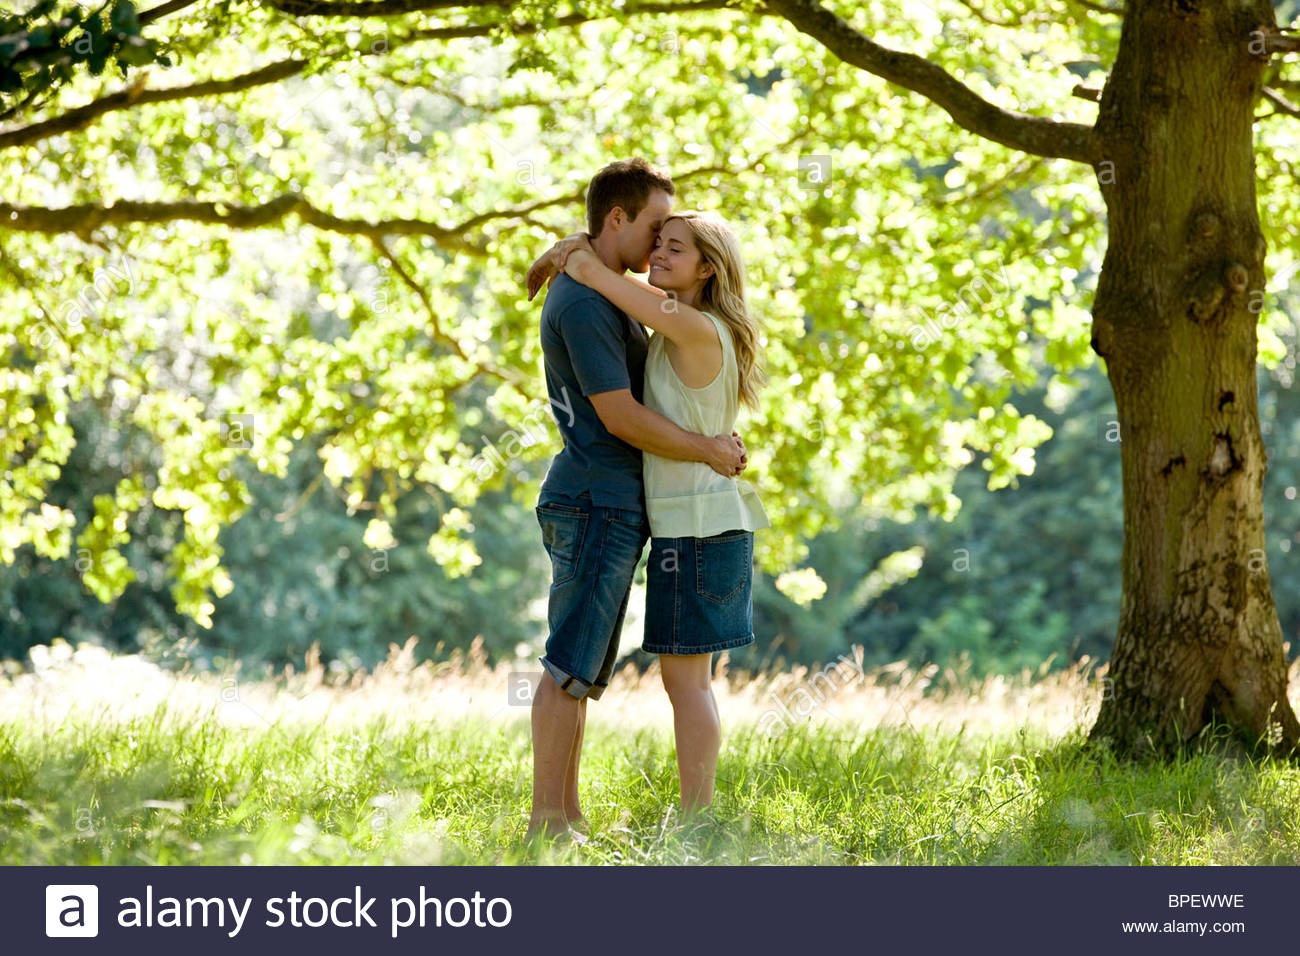 A young couple standing beneath a tree, embracing - Stock Image